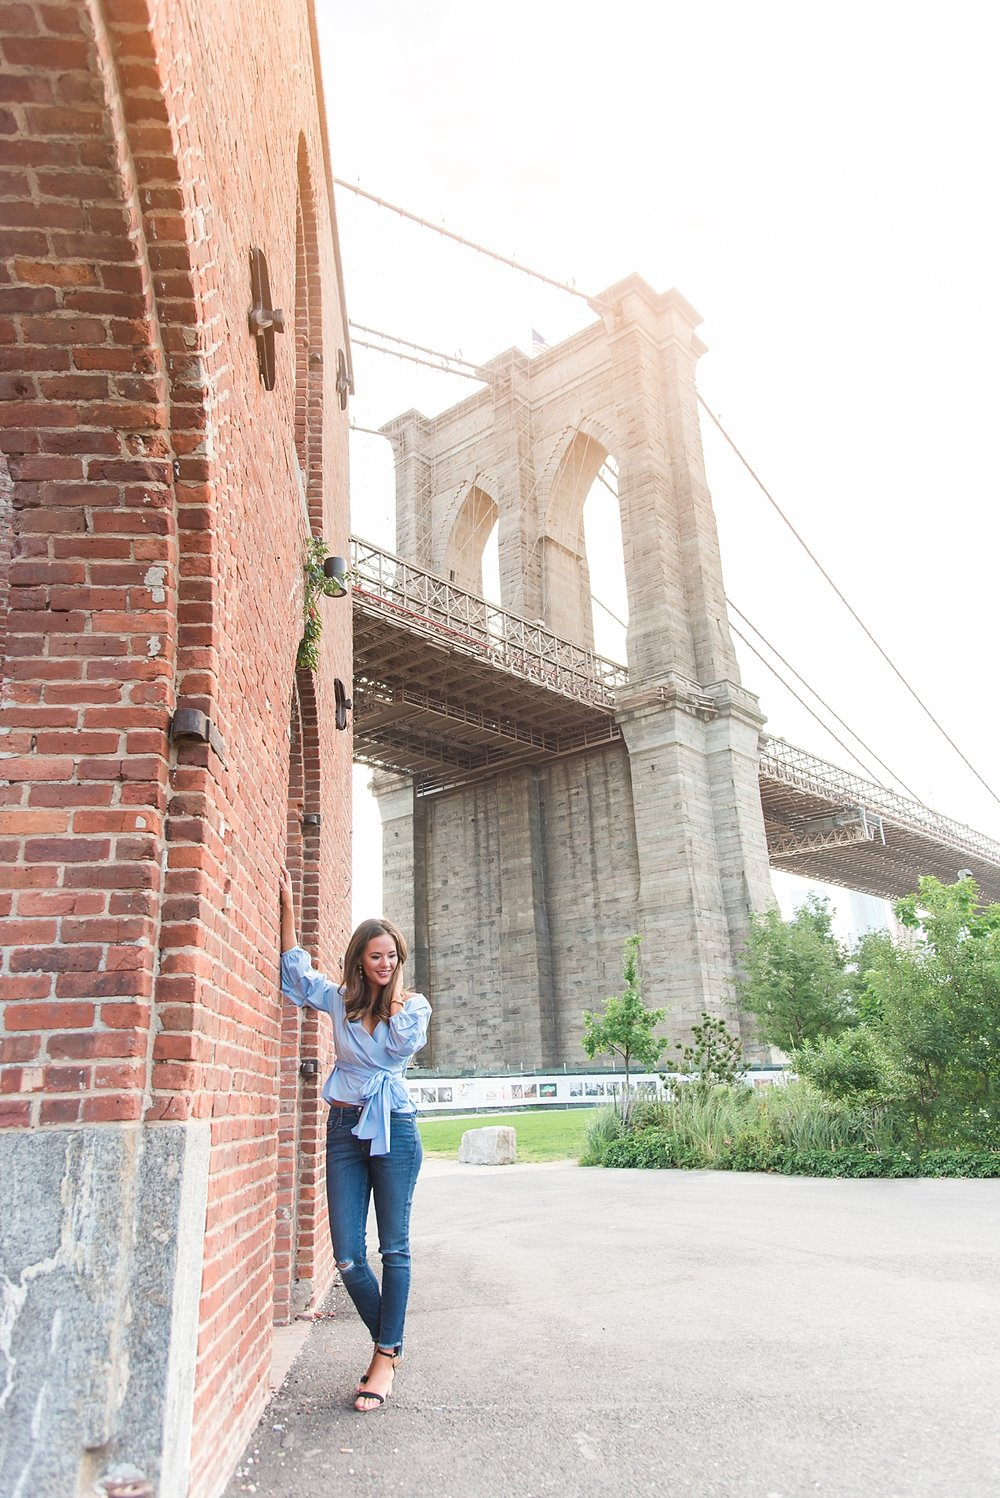 One of my favorite shots from the session - red brick with the Brooklyn Bridge in the background.